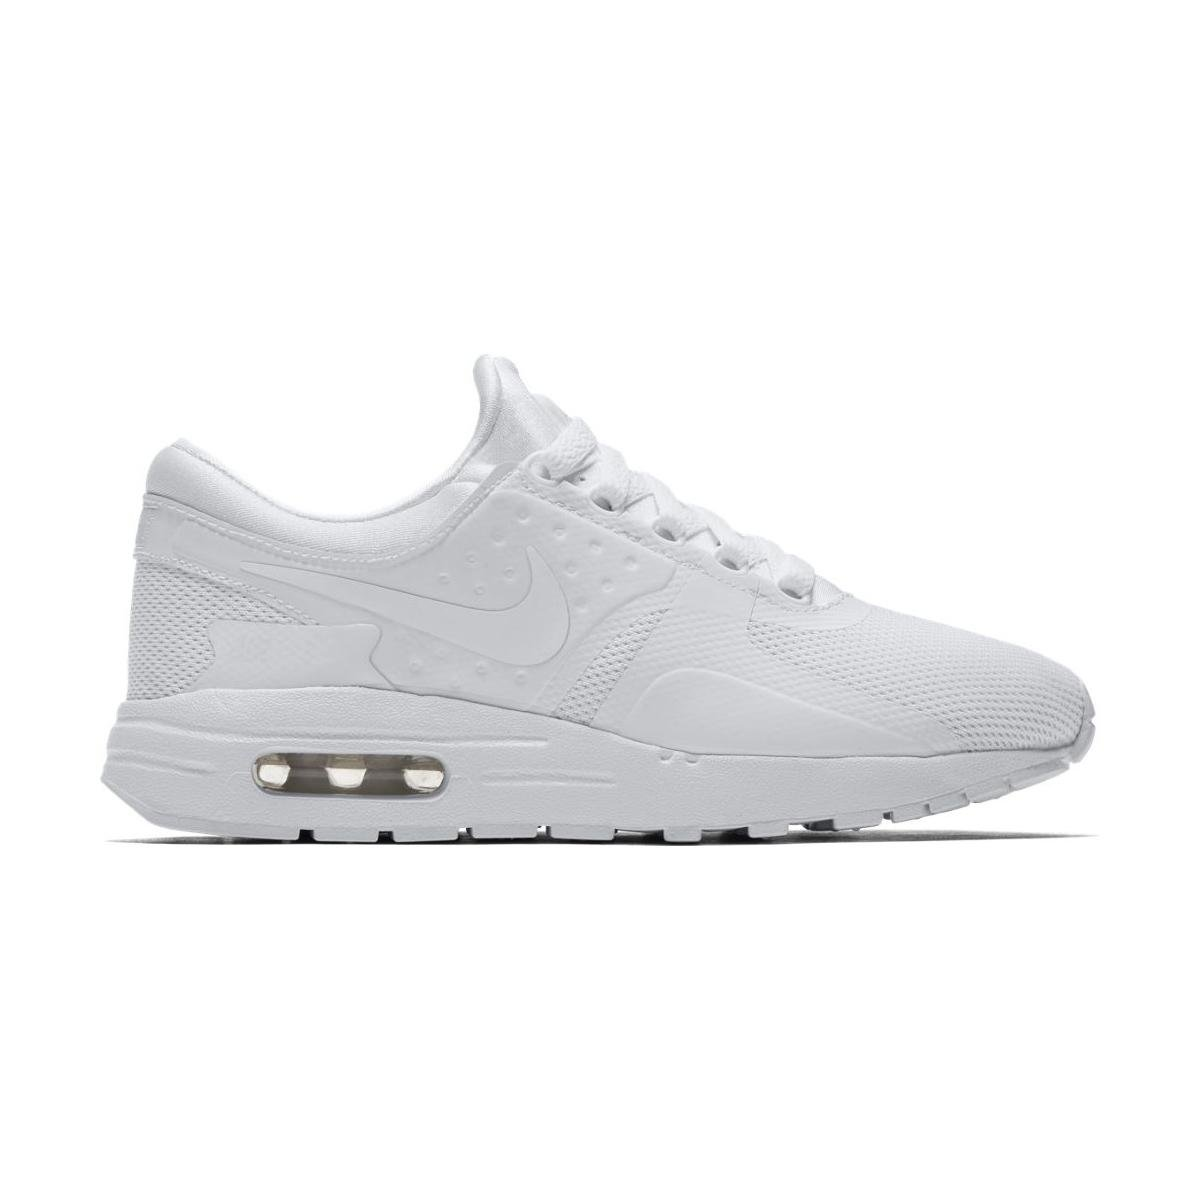 Nike Air Max Zero Essential GS Running Trainers 881224 Sneakers Shoes (Uk 5 Us 5.5Y Eu 38, white wolf grey 100)